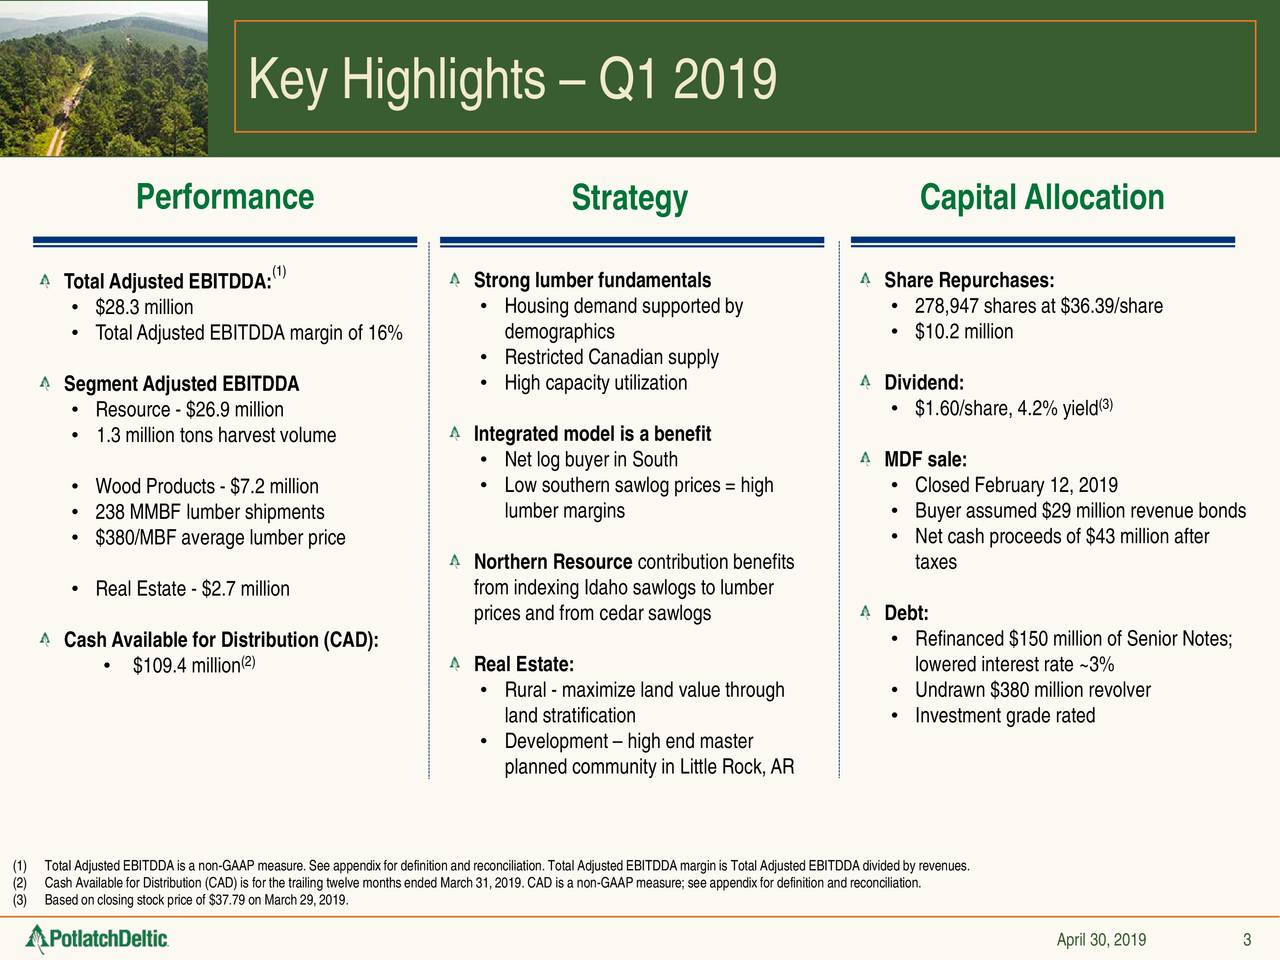 Performance Strategy Capital Allocation (1) Strong lumber fundamentals Share Repurchases: Total Adjusted EBITDDA: • $28.3 million • Housing demand supported by • 278,947 shares at $36.39/share • TotalAdjusted EBITDDAmargin of 16% demographics • $10.2 million • Restricted Canadian supply Segment Adjusted EBITDDA • High capacity utilization Dividend: • $1.60/share, 4.2% yield (3) • Resource - $26.9 million • 1.3 million tons harvest volume Integrated model is a benefit • Net log buyer in South MDF sale: • Wood Products - $7.2 million • Low southern sawlog prices = high • Closed February 12, 2019 • 238 MMBF lumber shipments lumber margins • Buyer assumed $29 million revenue bonds • Net cash proceeds of $43 million after • $380/MBF average lumber price Northern Resource contribution benefits taxes • Real Estate - $2.7 million from indexing Idaho sawlogs to lumber prices and from cedar sawlogs Debt: Cash Available for Distribution (CAD): • Refinanced $150 million of Senior Notes; (2) Real Estate: lowered interest rate ~3% • $109.4 million • Rural - maximize land value through • Undrawn $380 million revolver land stratification • Investment grade rated • Development – high end master planned community in Little Rock,AR (1) Total Adjusted EBITDDA is a non-GAAP measure. See appendix for definition and reconciliation. Total Adjusted EBITDDA margin is Total Adjusted EBITDDA divided by revenues. (3) Based on closing stock price of $37.79 on March 29, 2019. twelve monthsended March 31,2019.CAD is a non- GAAP measure; see appendix for definition and reconciliation. April 30, 2019 3